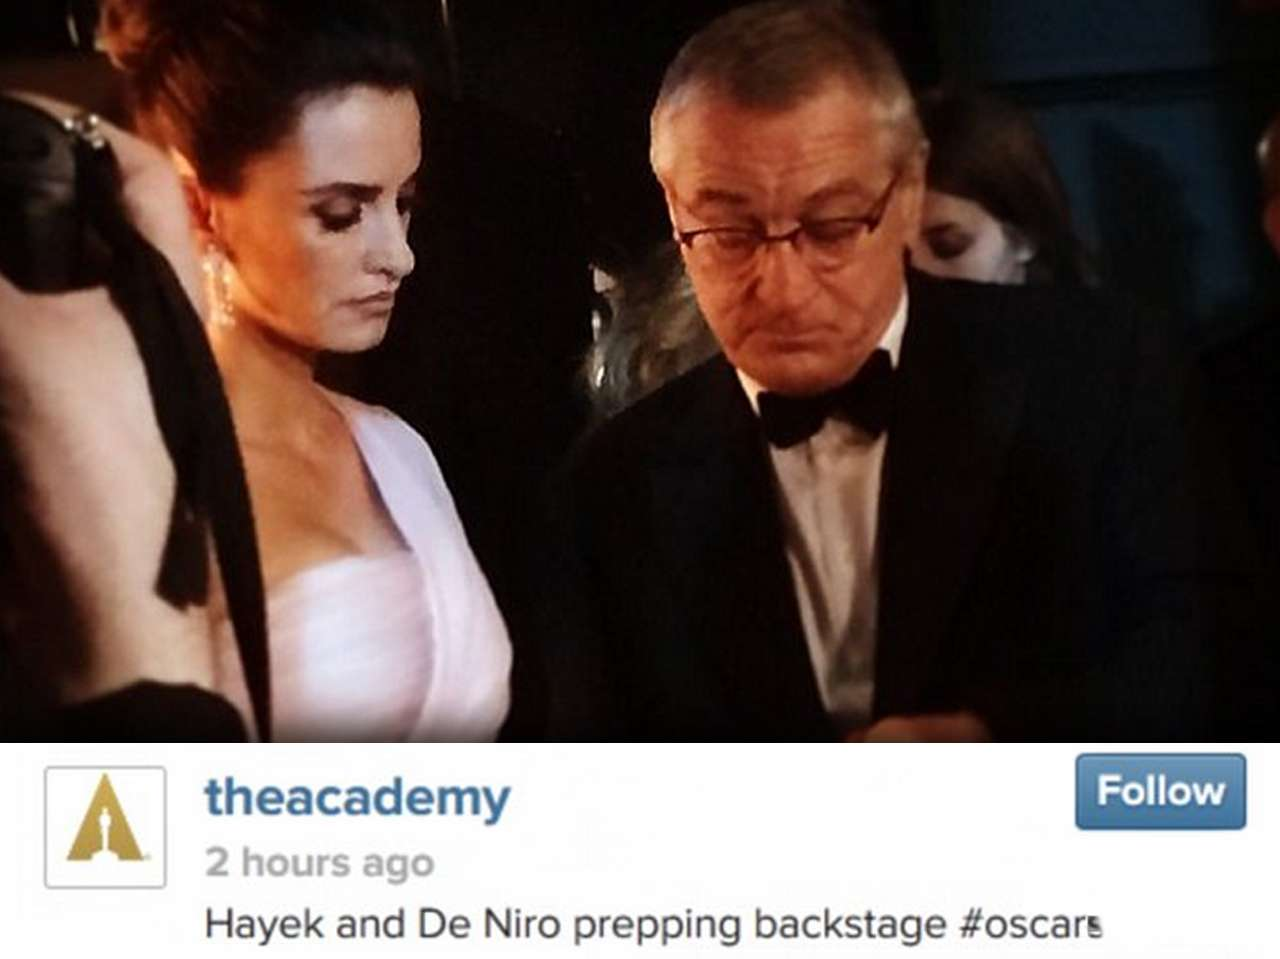 Instagram / TheAcademy